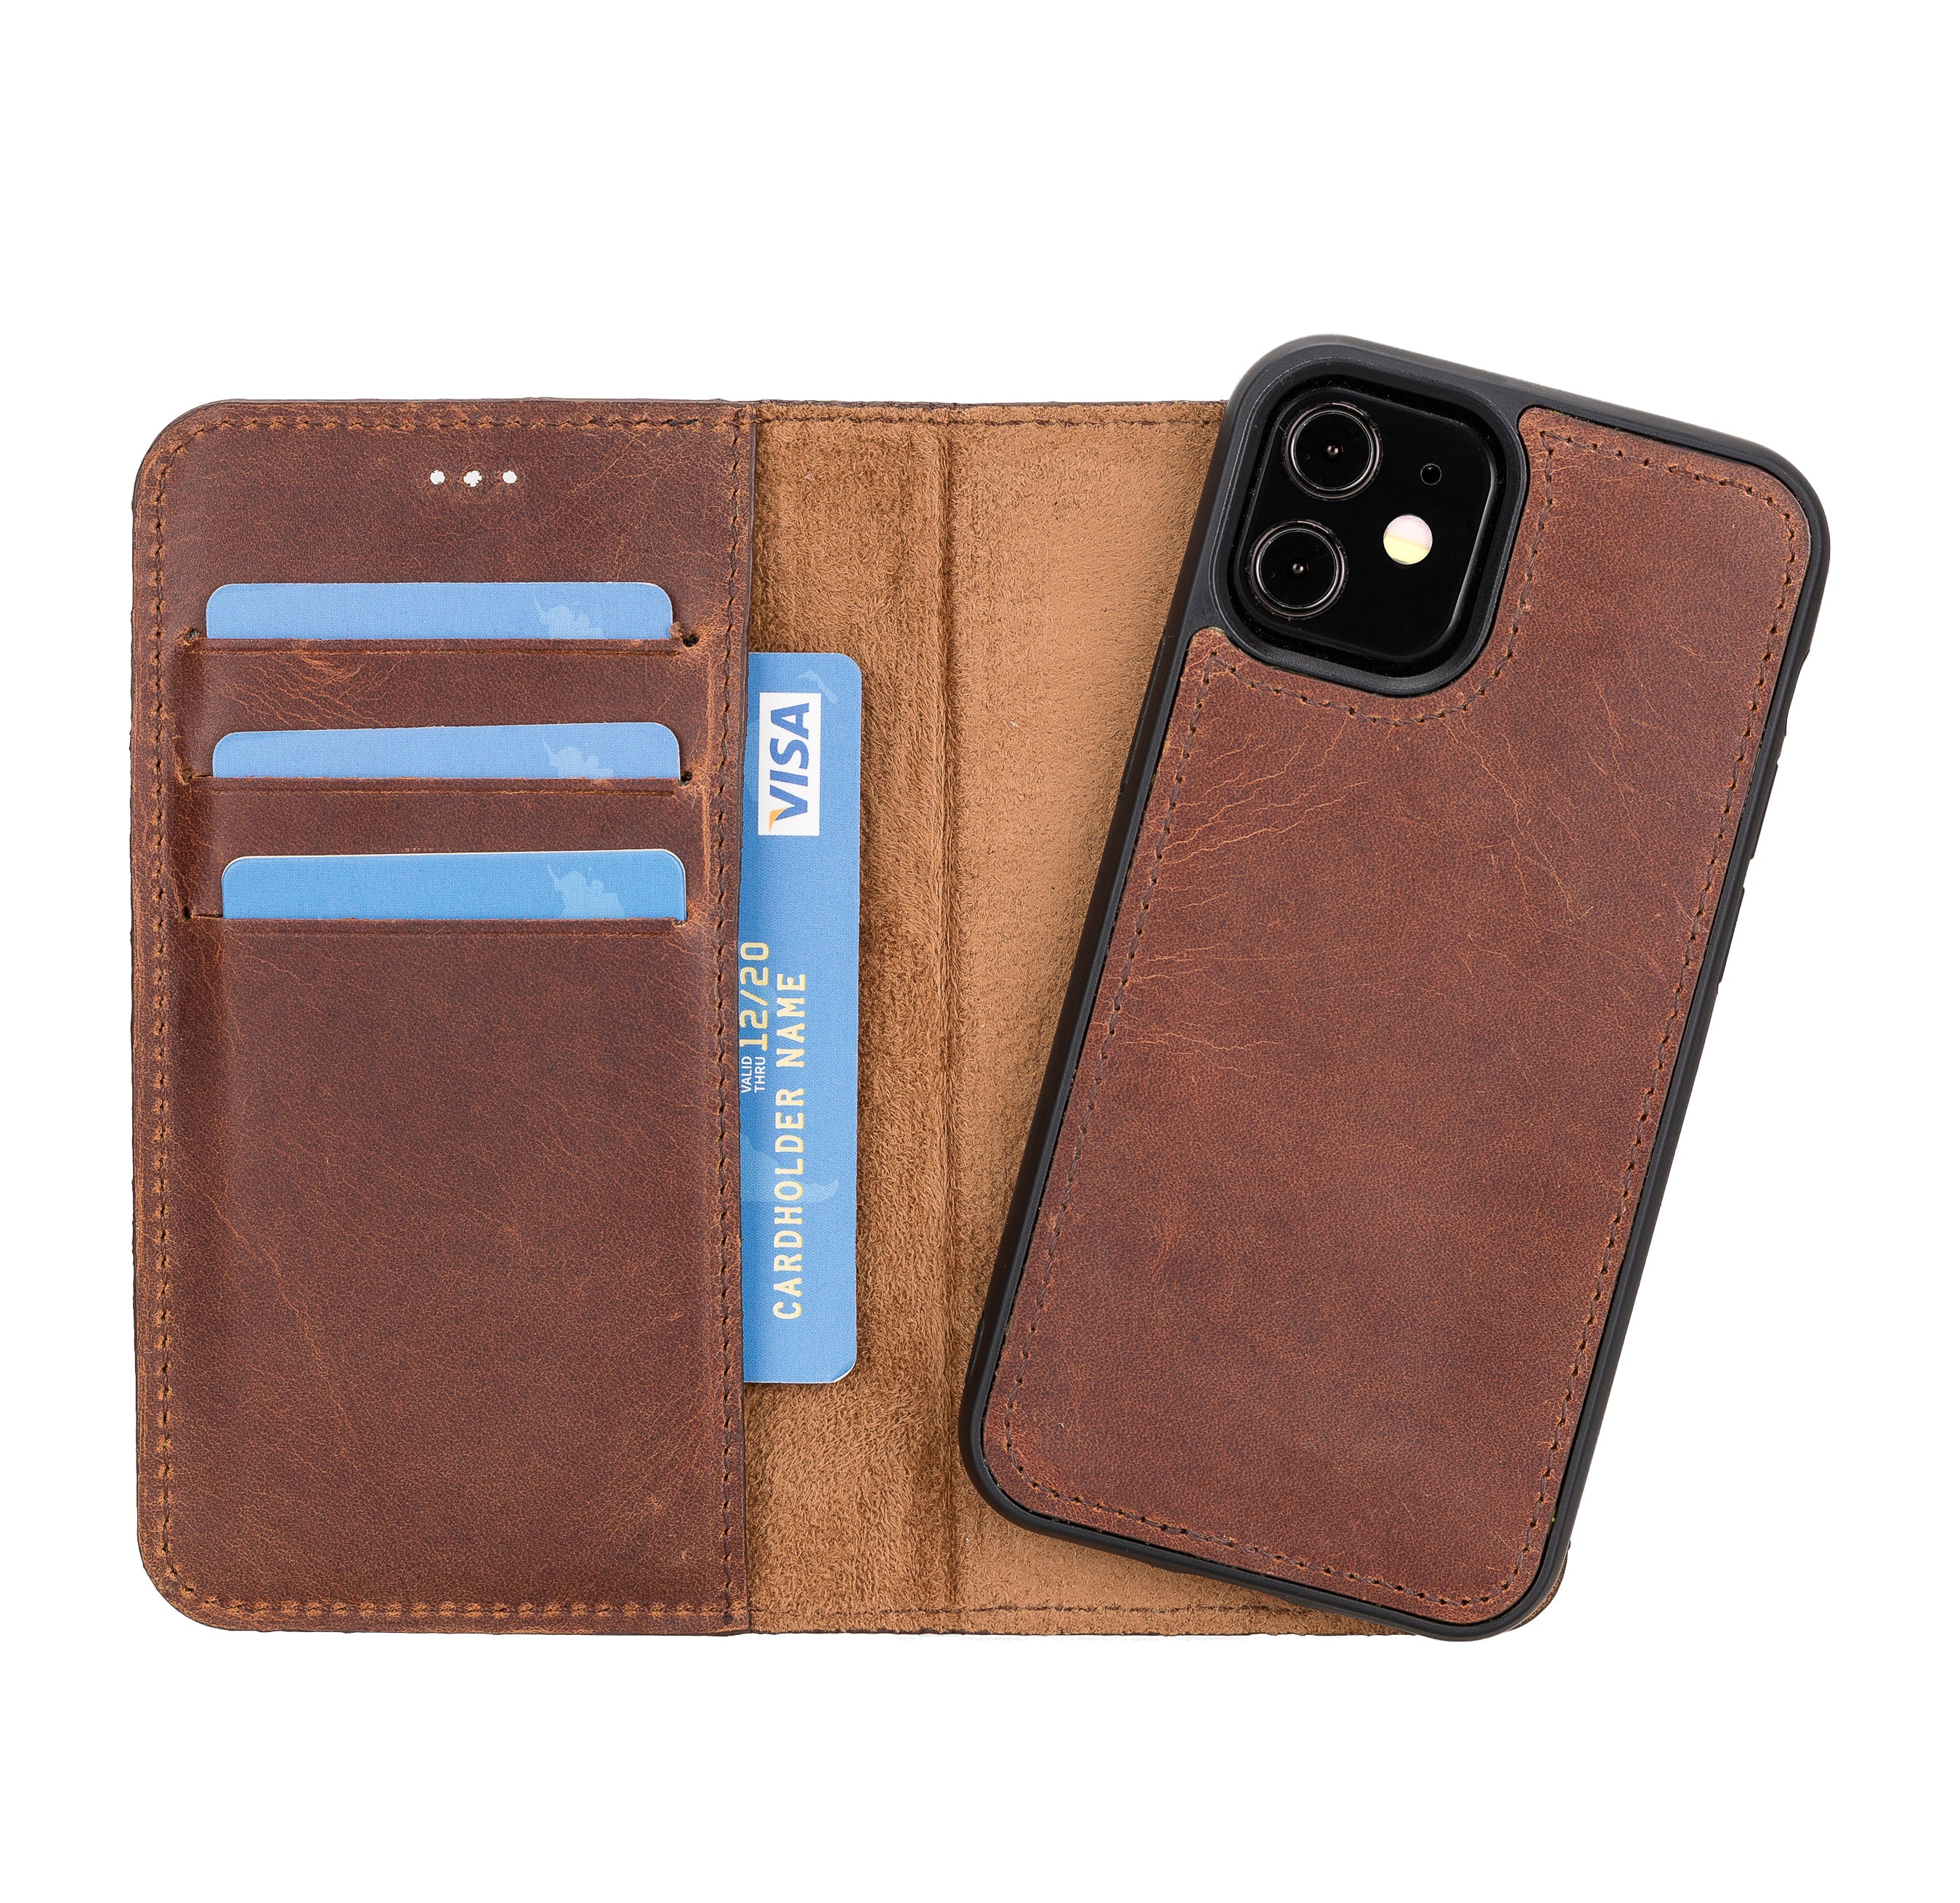 "Magic Magnetic Detachable Leather Wallet Case for iPhone 12 Mini (5.4"") - BROWN - saracleather"